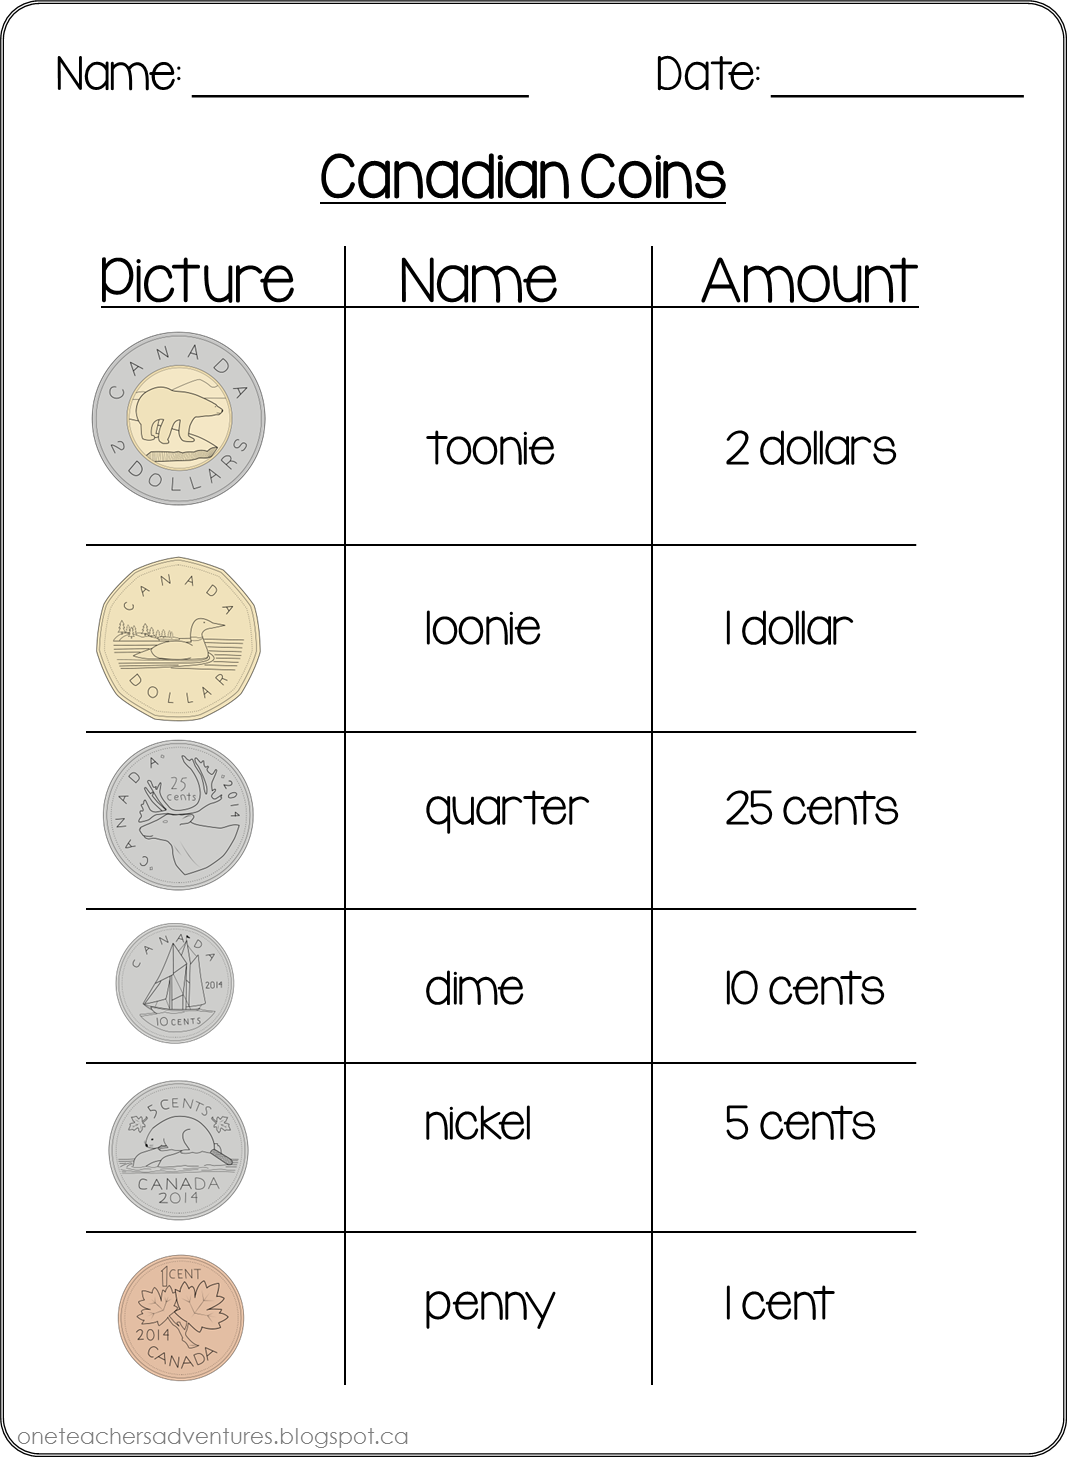 FREE Canadian Coins Counting Money Sheets | True north, strong and ...